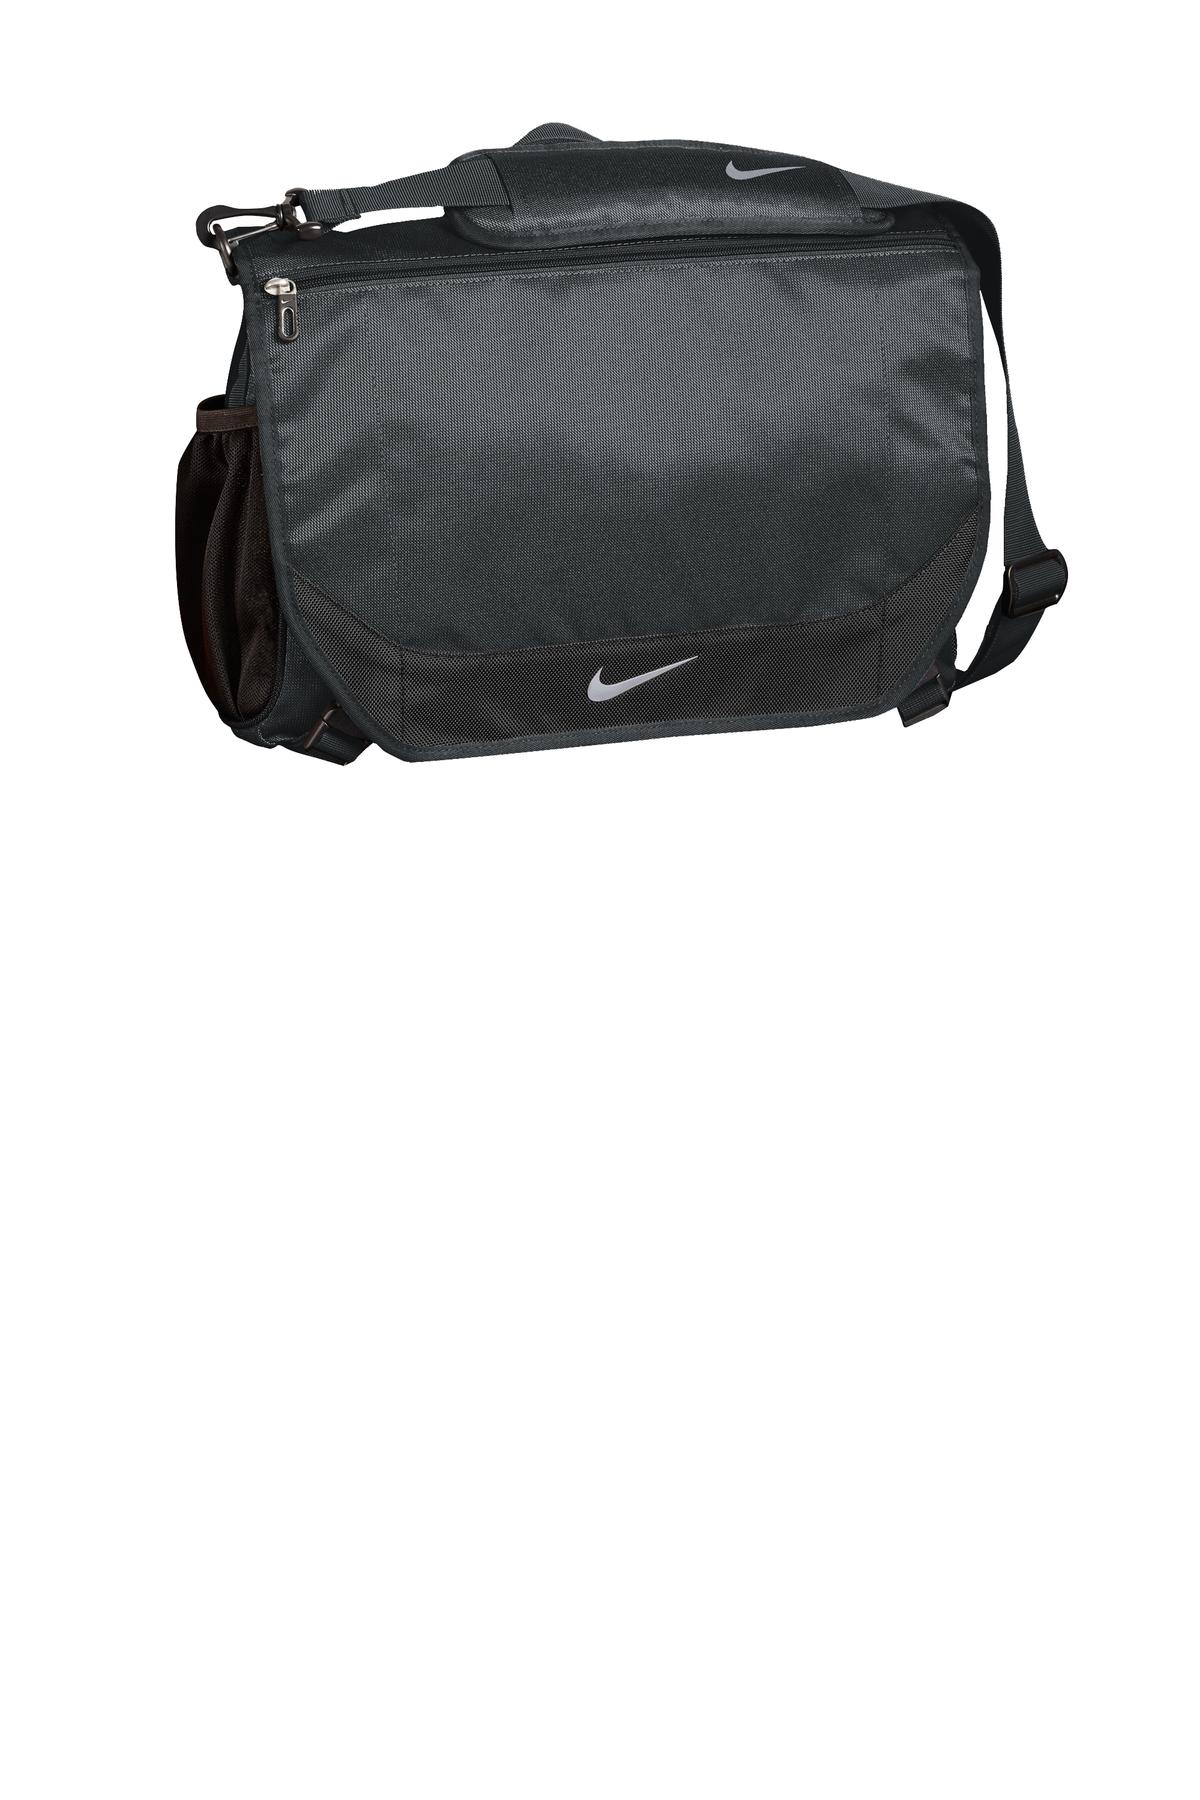 Nike Golf Performance Messenger. TG0245